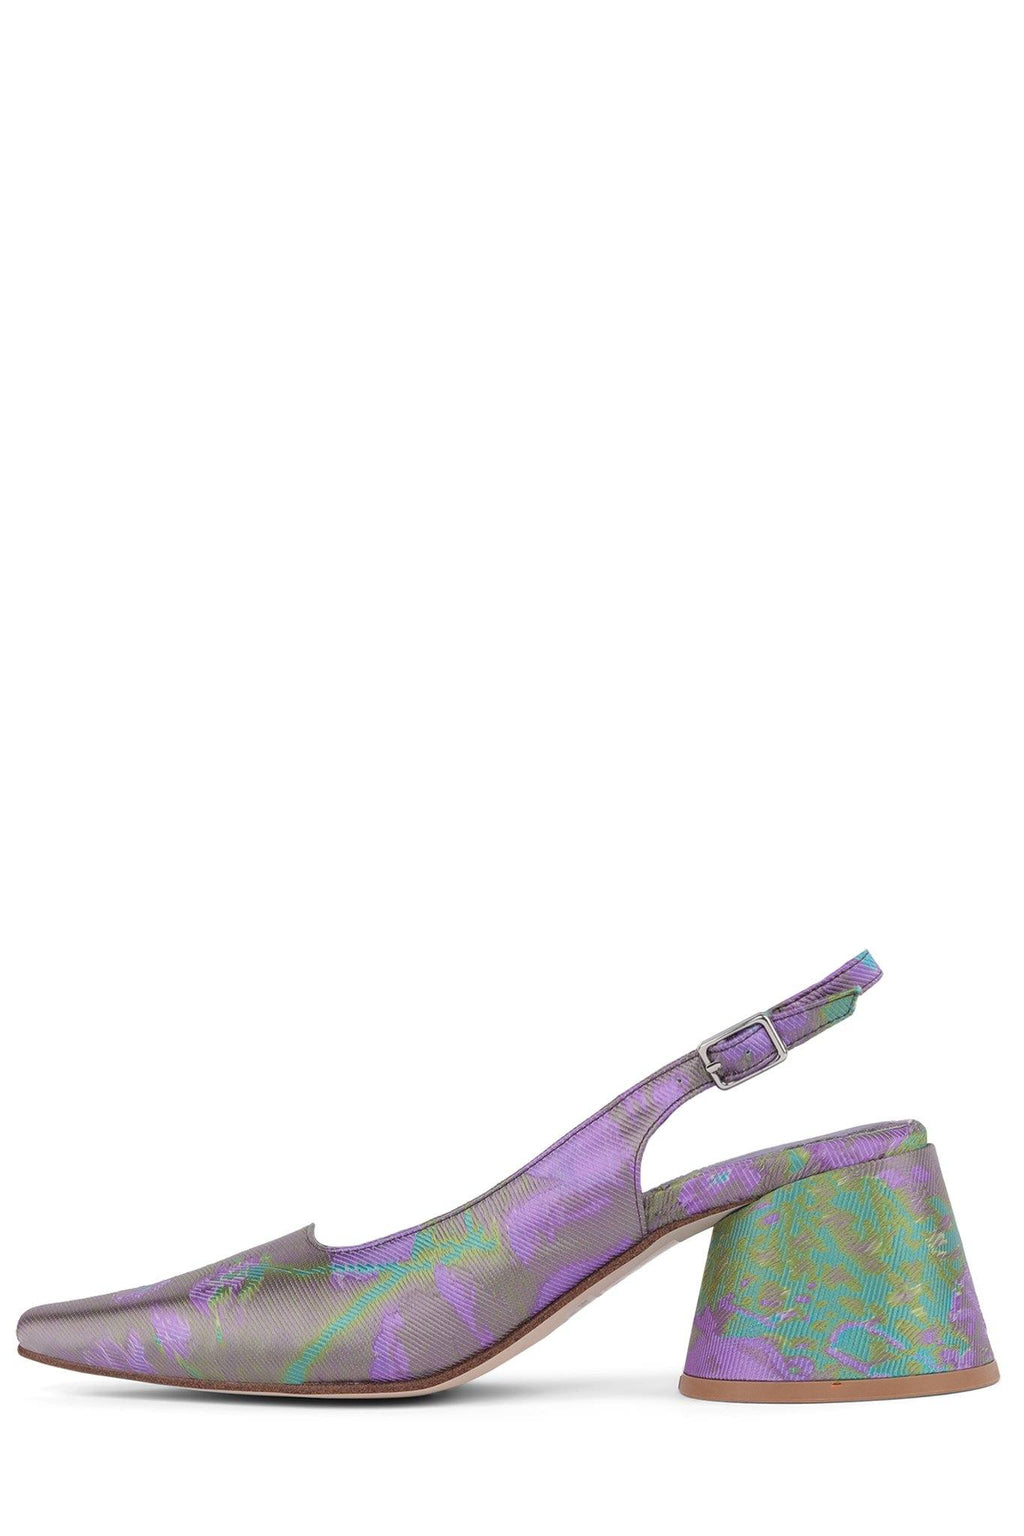 FERRA Pump YYH Purple Metallic Floral 6